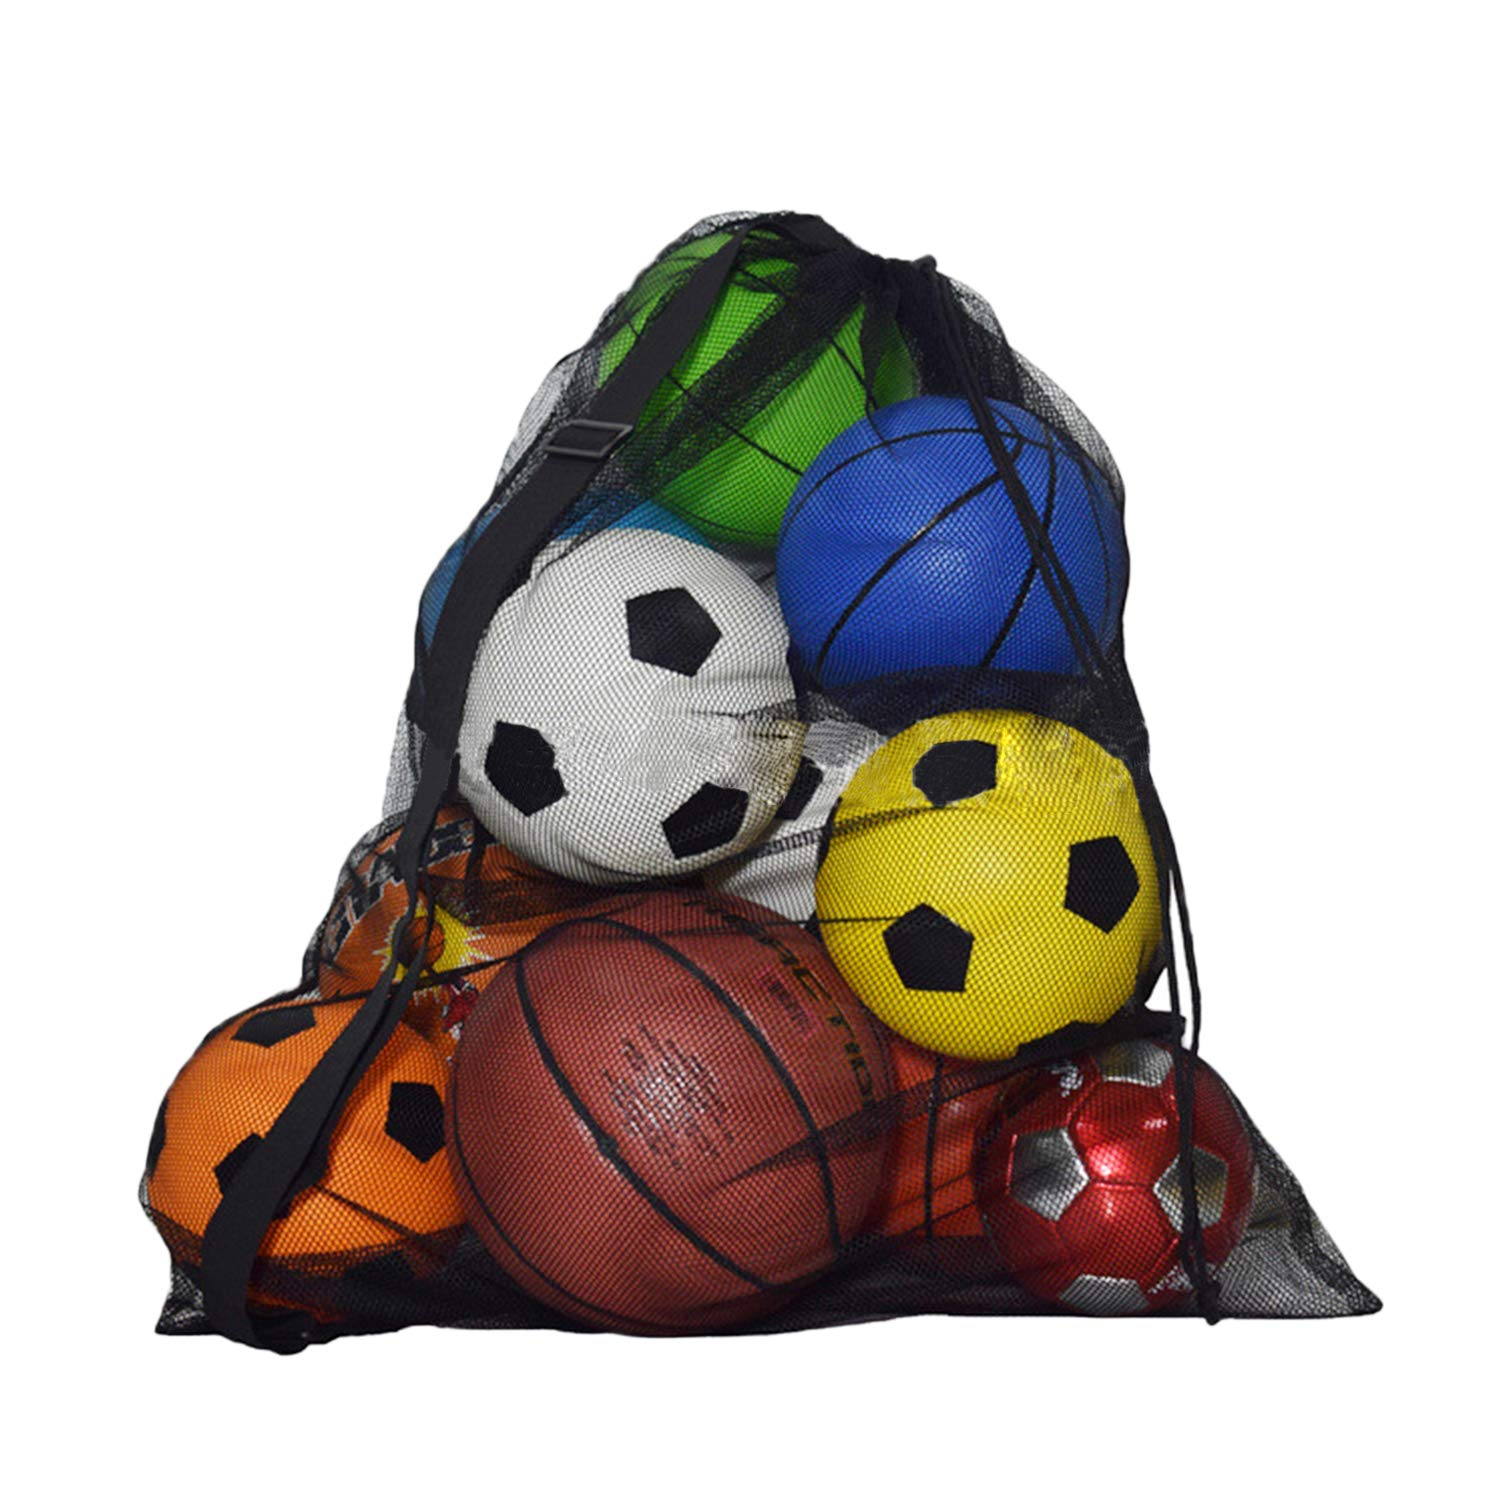 Heavy Duty Multiple Use Sports Drawstring Mesh Ball Bag Football Basketball Training Equipment Storage Bag Drawstring Shoulder Bag Carry Sack Netbag Organizer With Shoulder Strap For 10-15 Balls